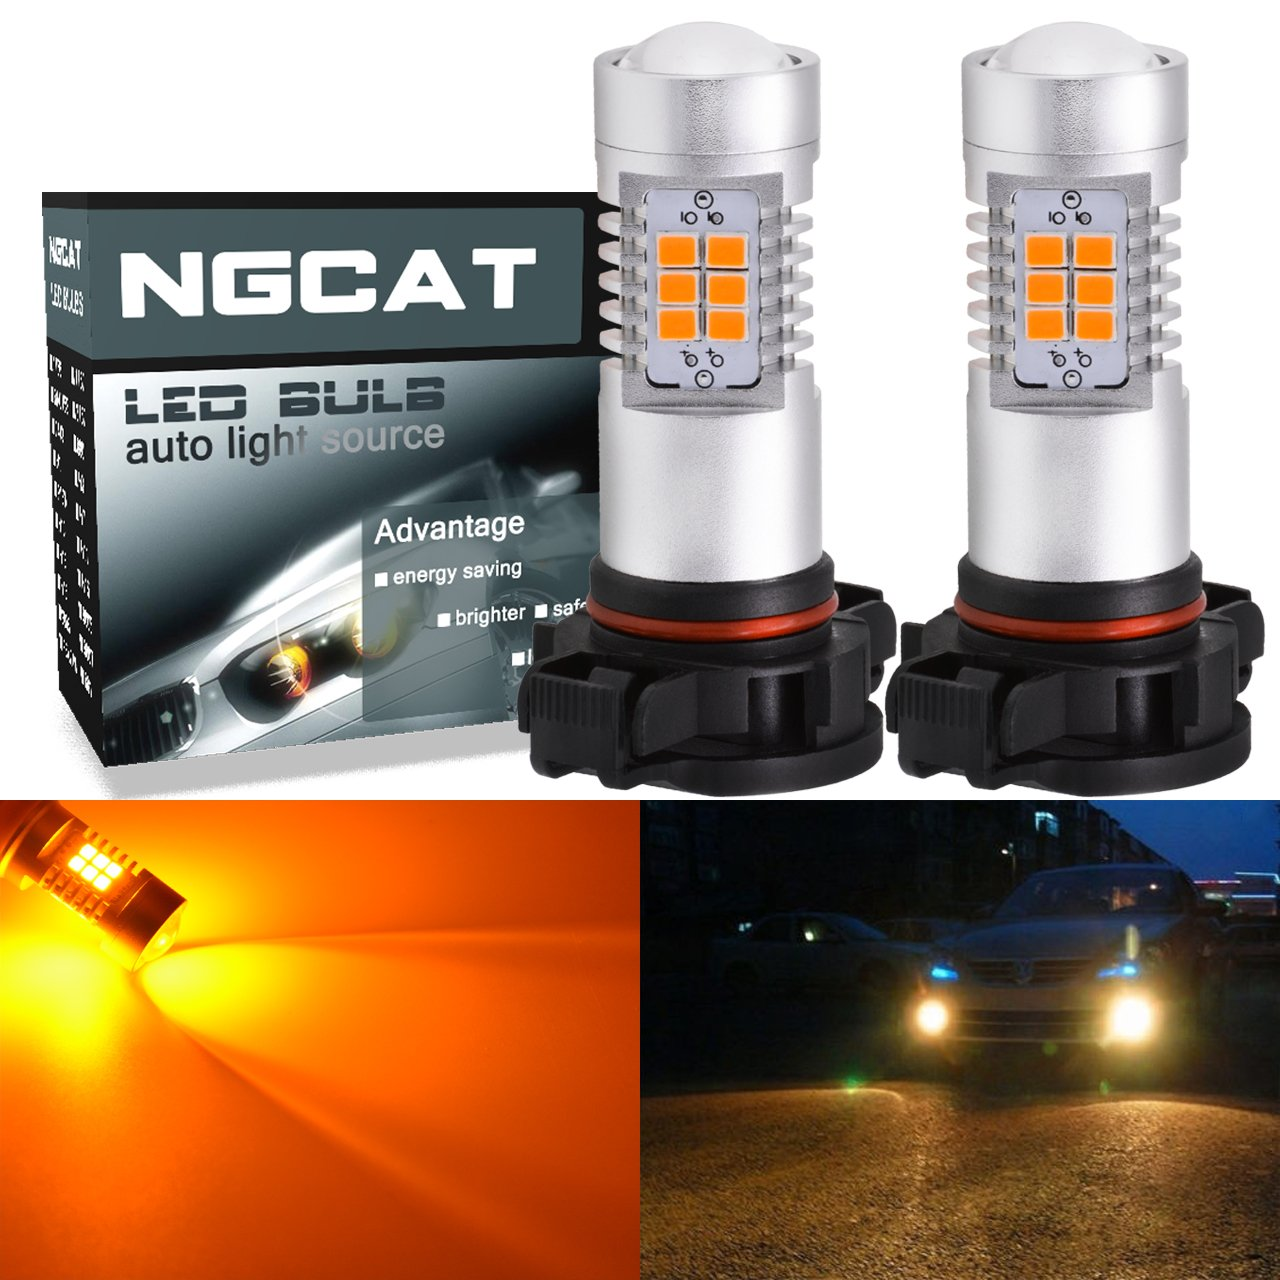 NGCAT Auto LED Bulb 2PCS PSX24W DRL Fog Light Replacement 2835 21 SMD Chipsets car Driving Daytime Running Lights, Amber 10-16V 10.5W